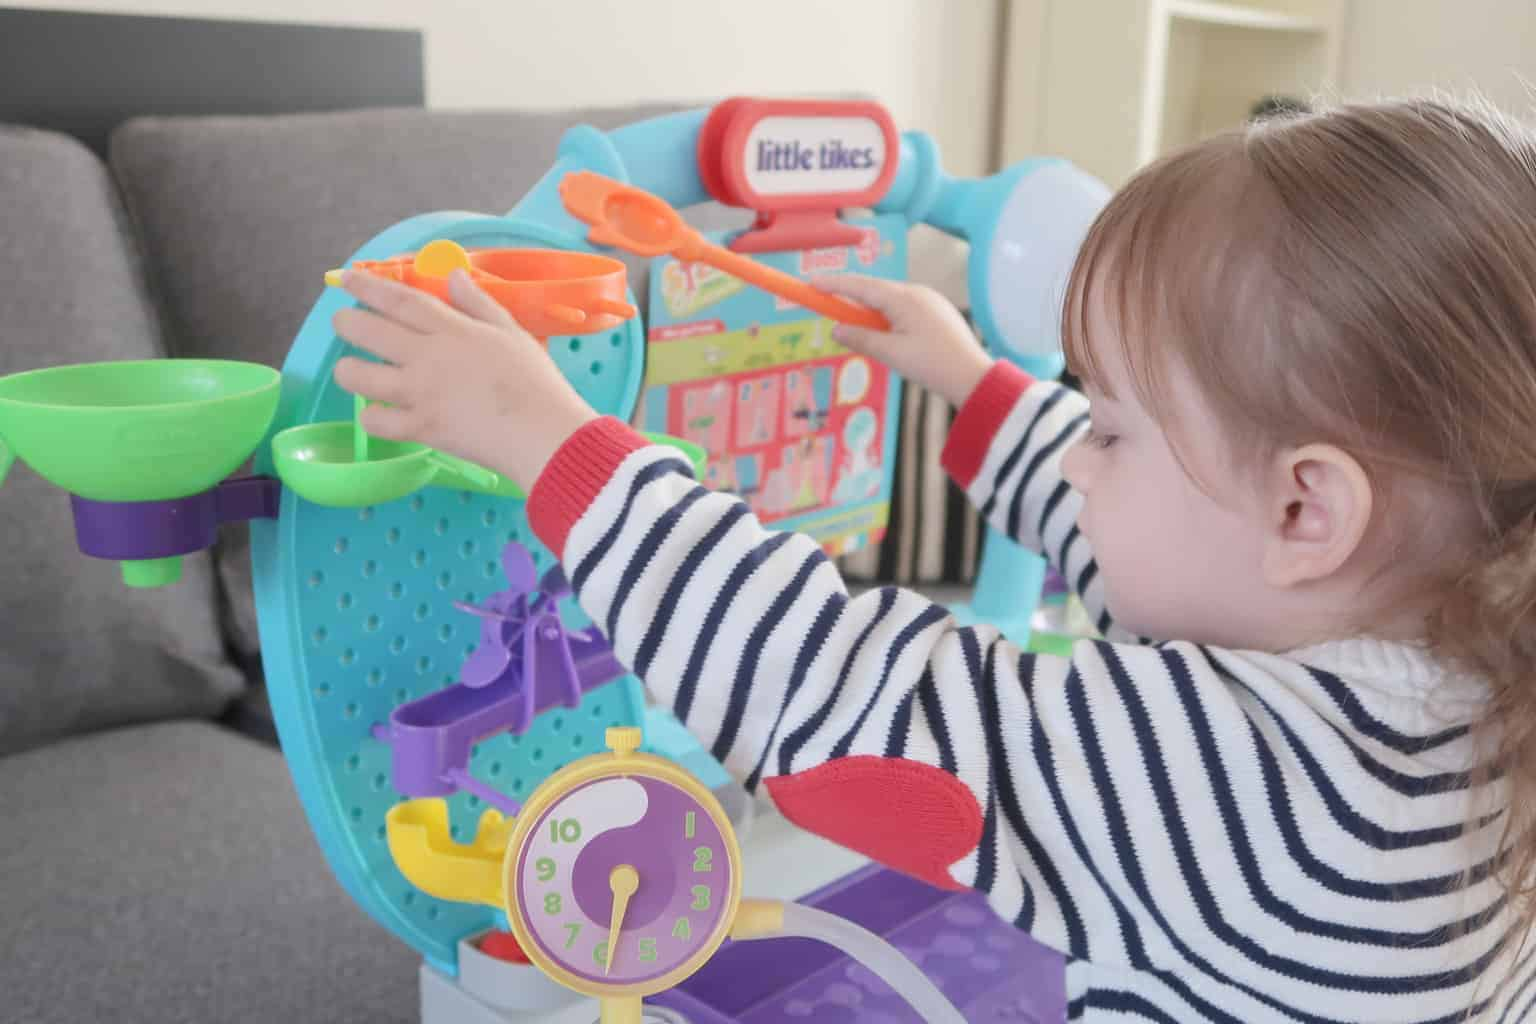 Preschool | When the school expect you to for-go your free childcare entitlement